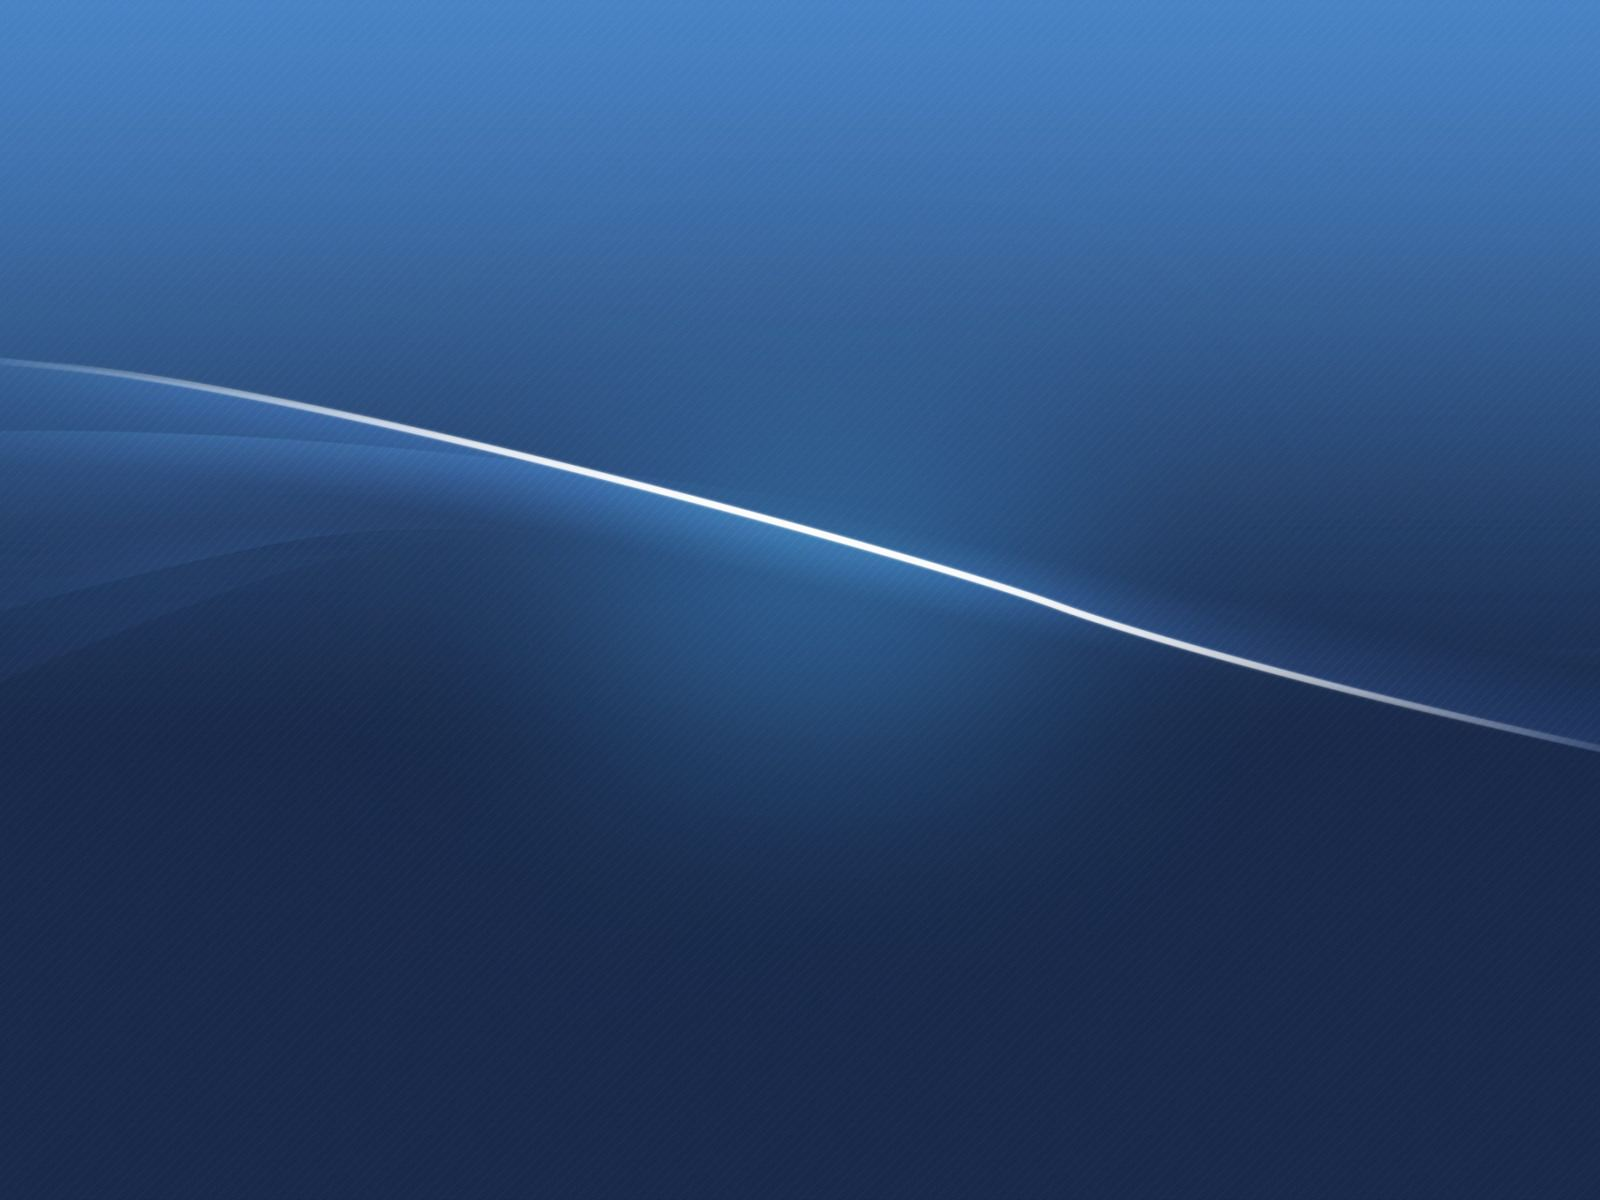 Professional Business Backgrounds White line on 1600x1200